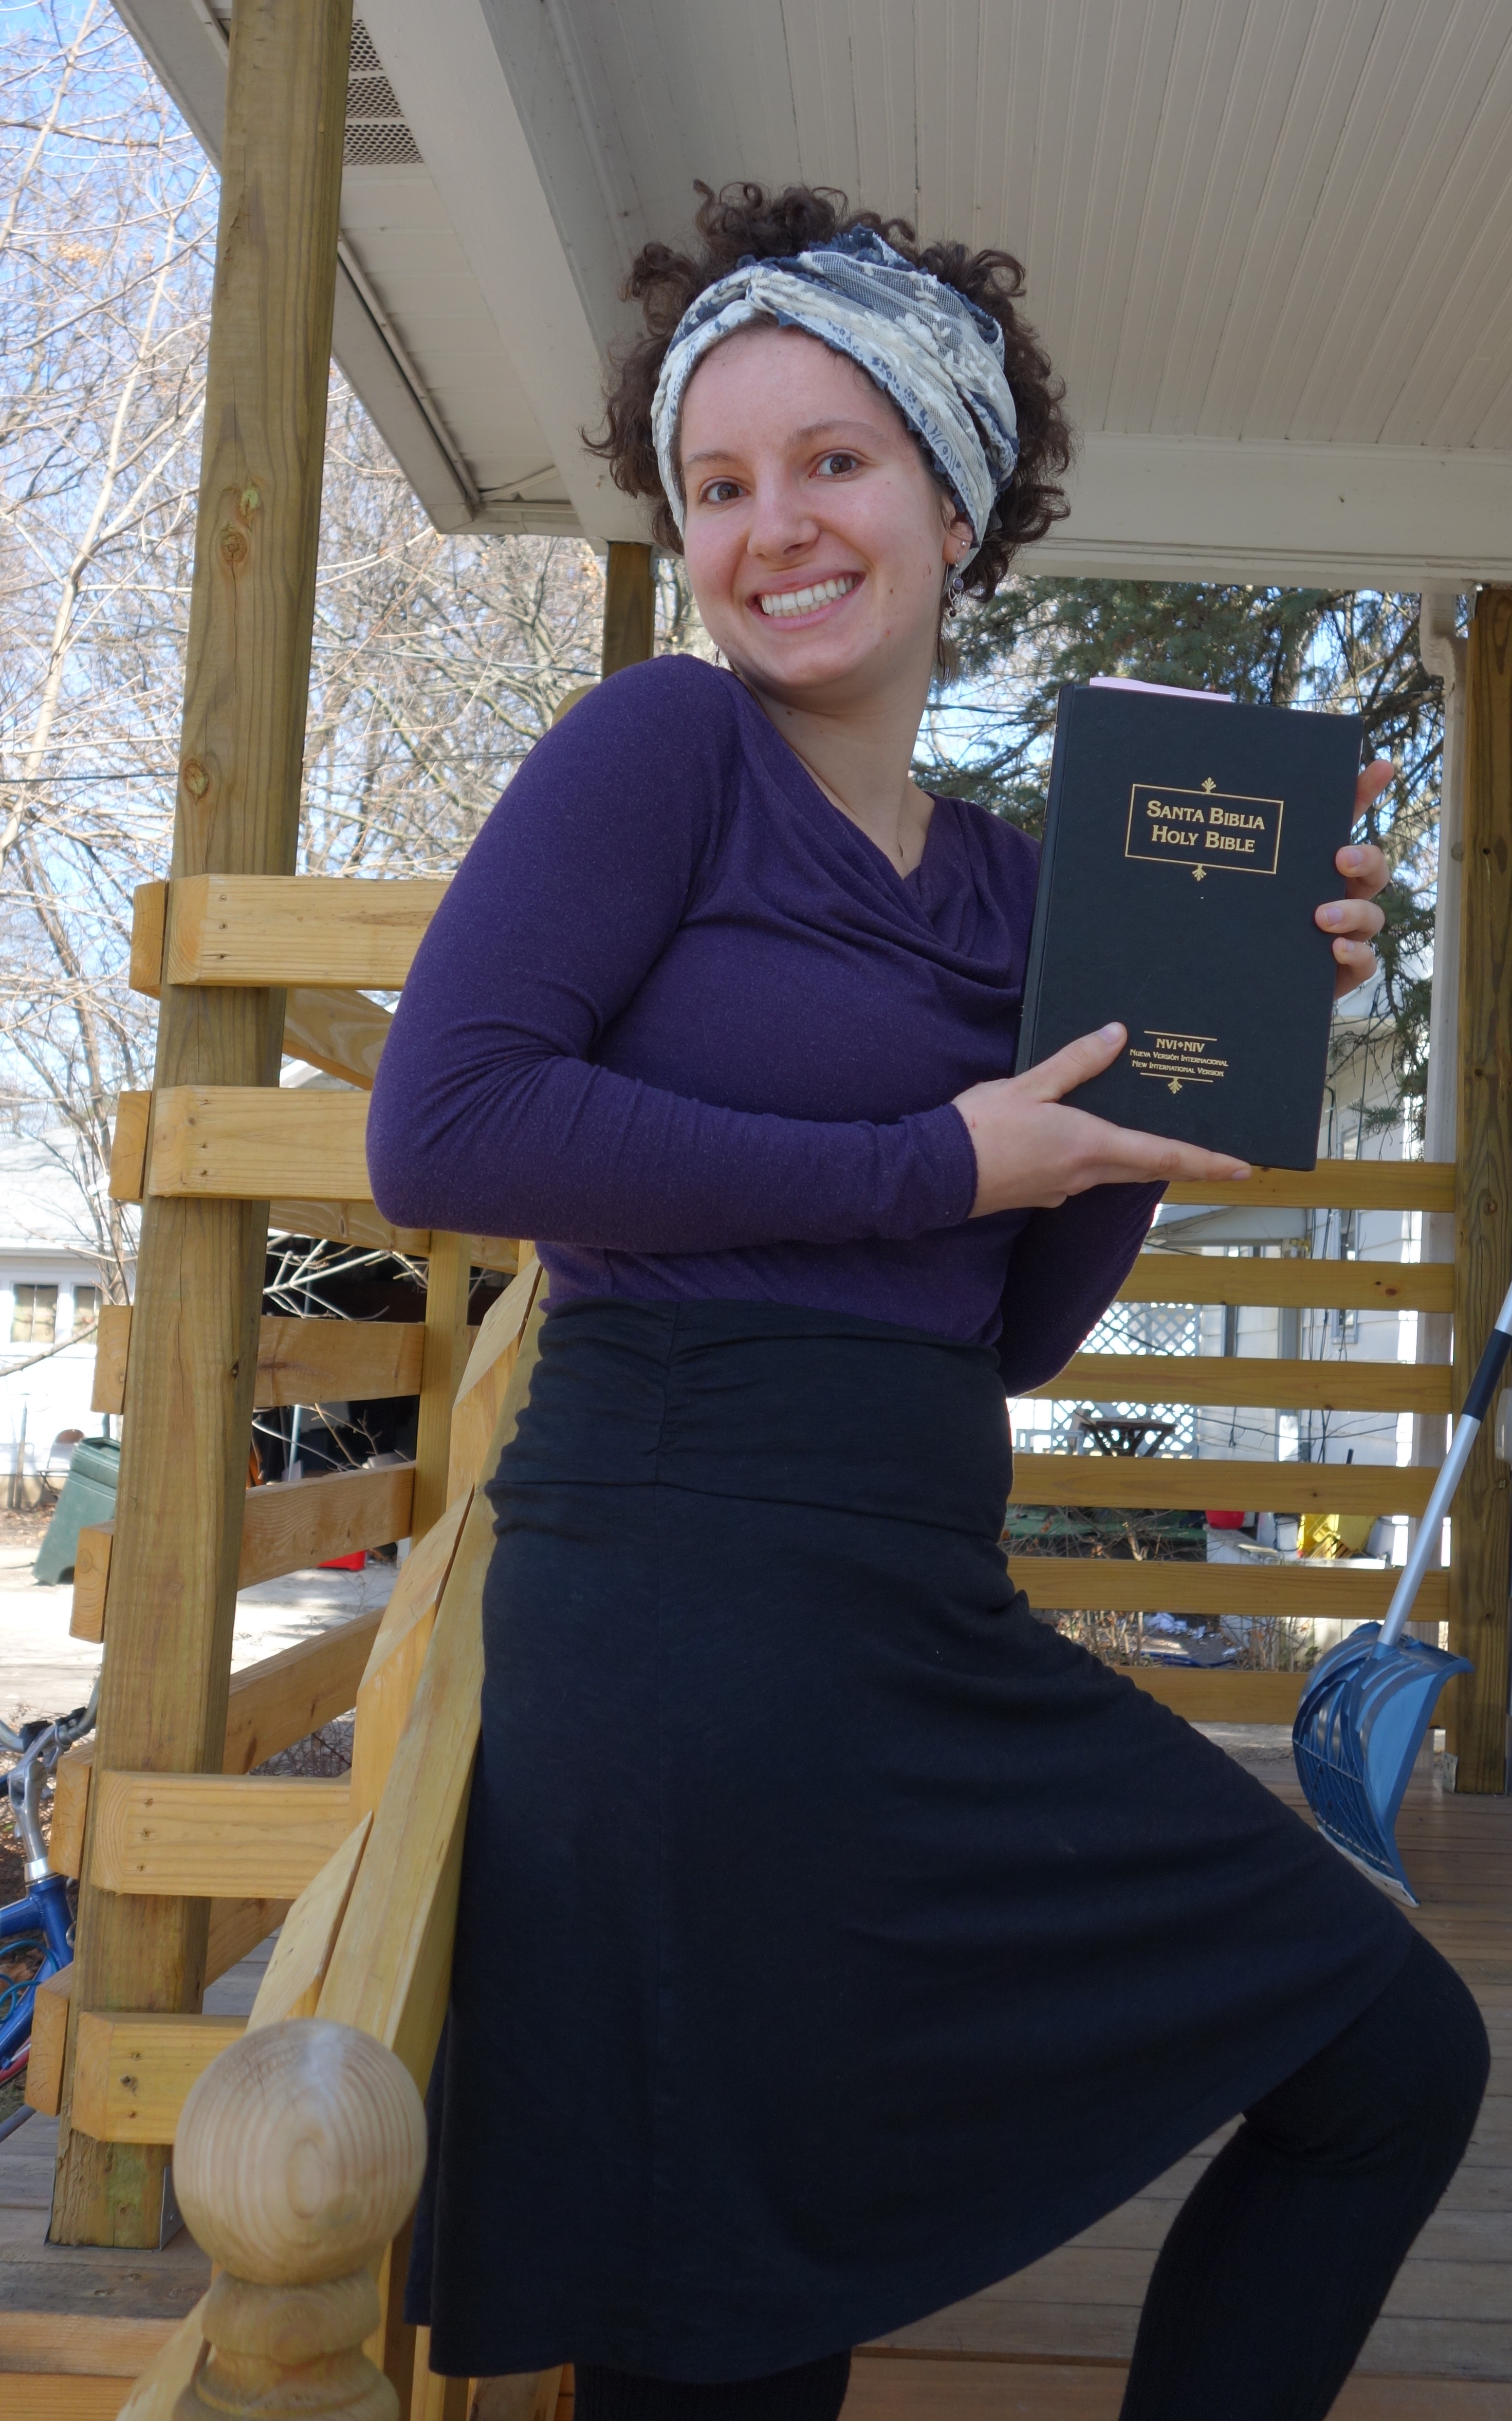 Maria Jantz poses for a picture with a Bible